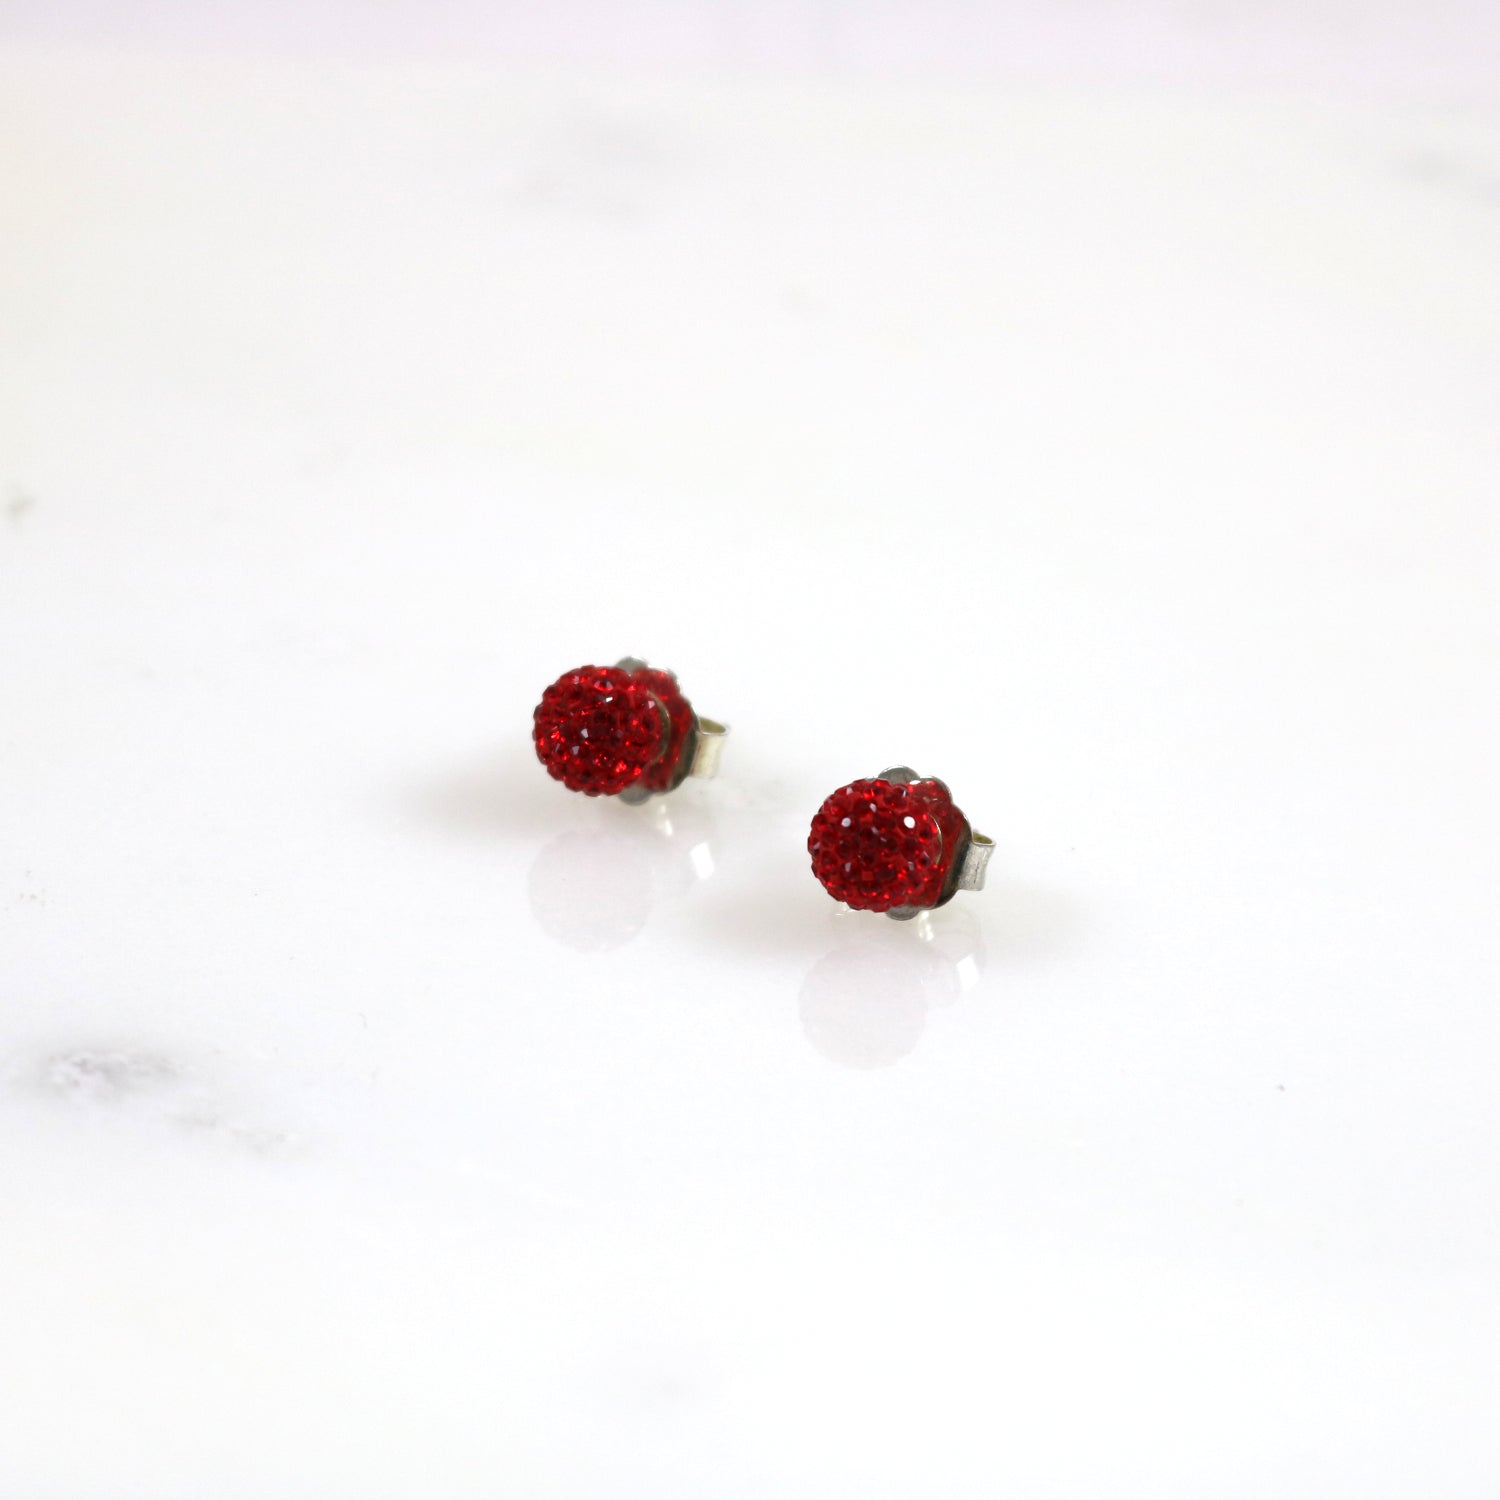 8mm Stud Earrings